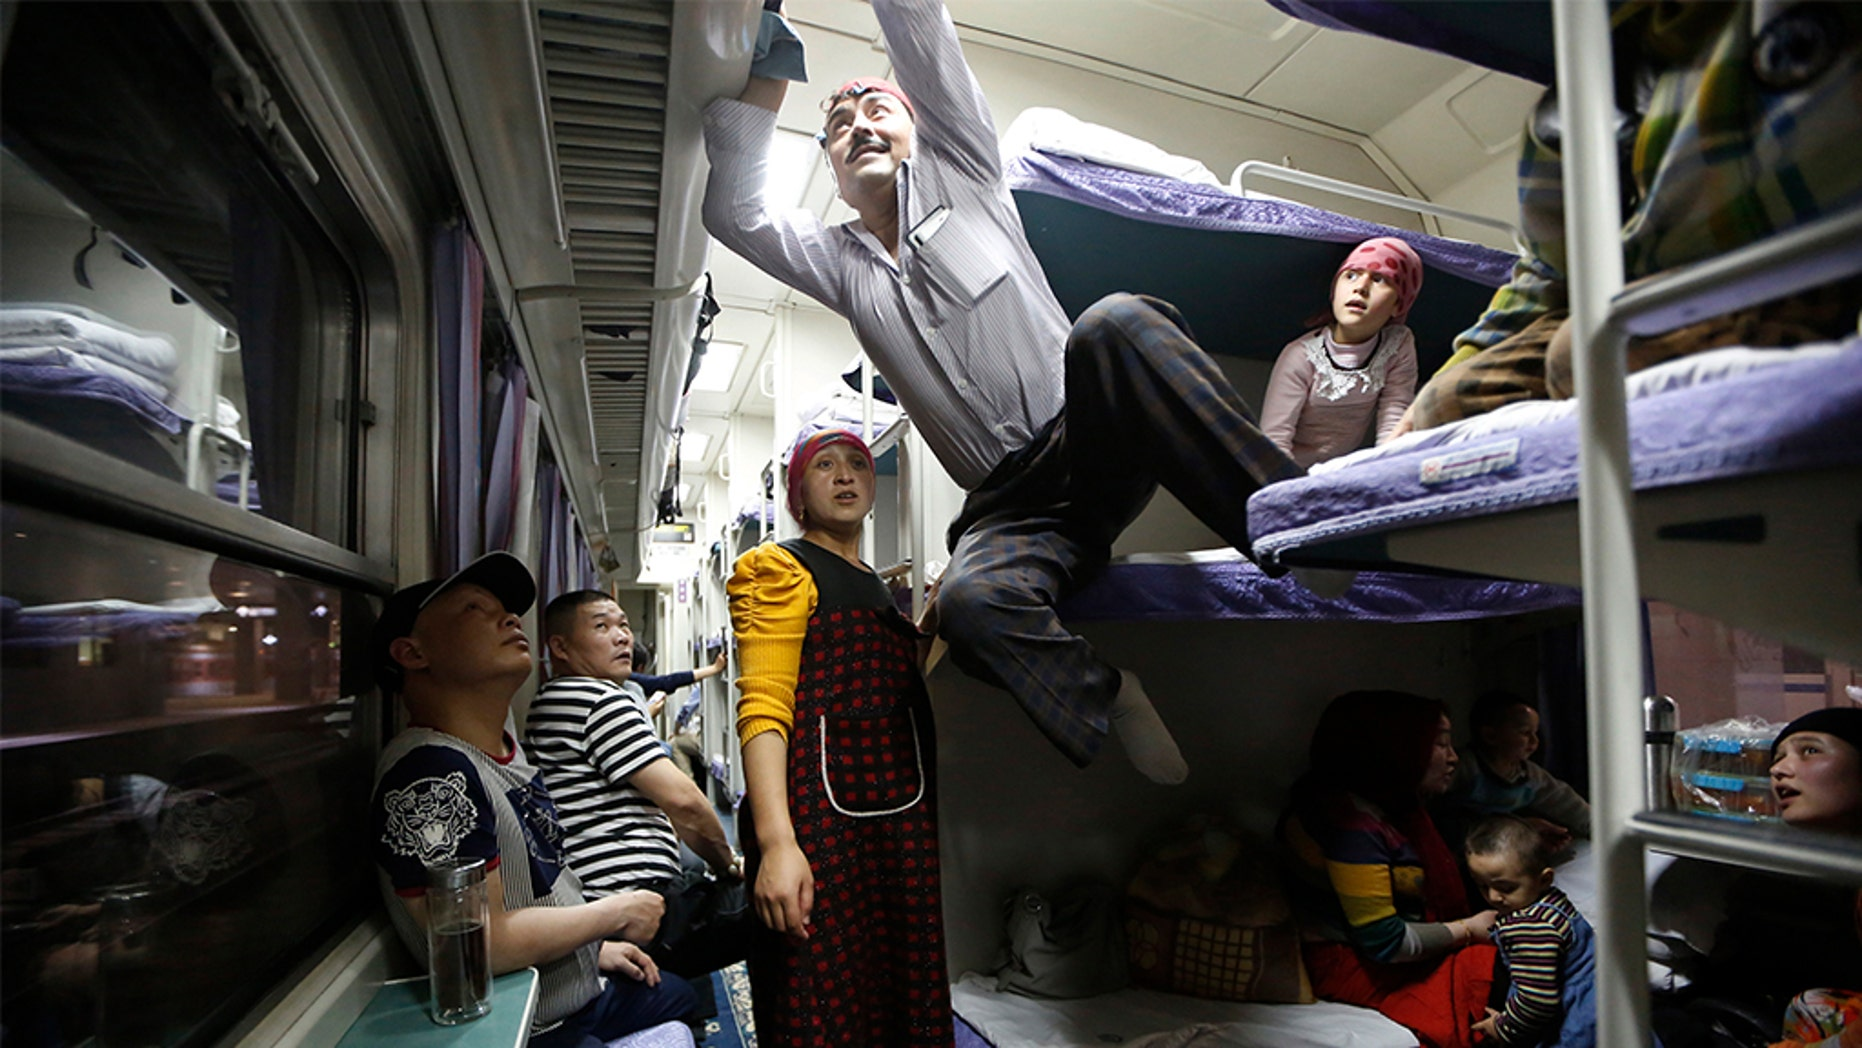 A Uighur group traveling on a train to Xingjiang, in Shanghai, May 14, 2014. (REUTERS/Aly Song, File)